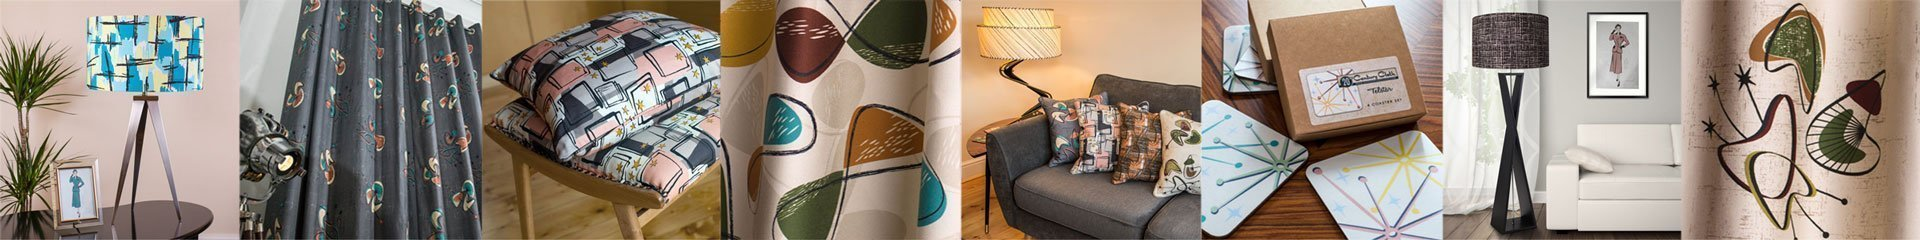 Our range of Mid Century, 1950's inspired style fabrics and homewares.